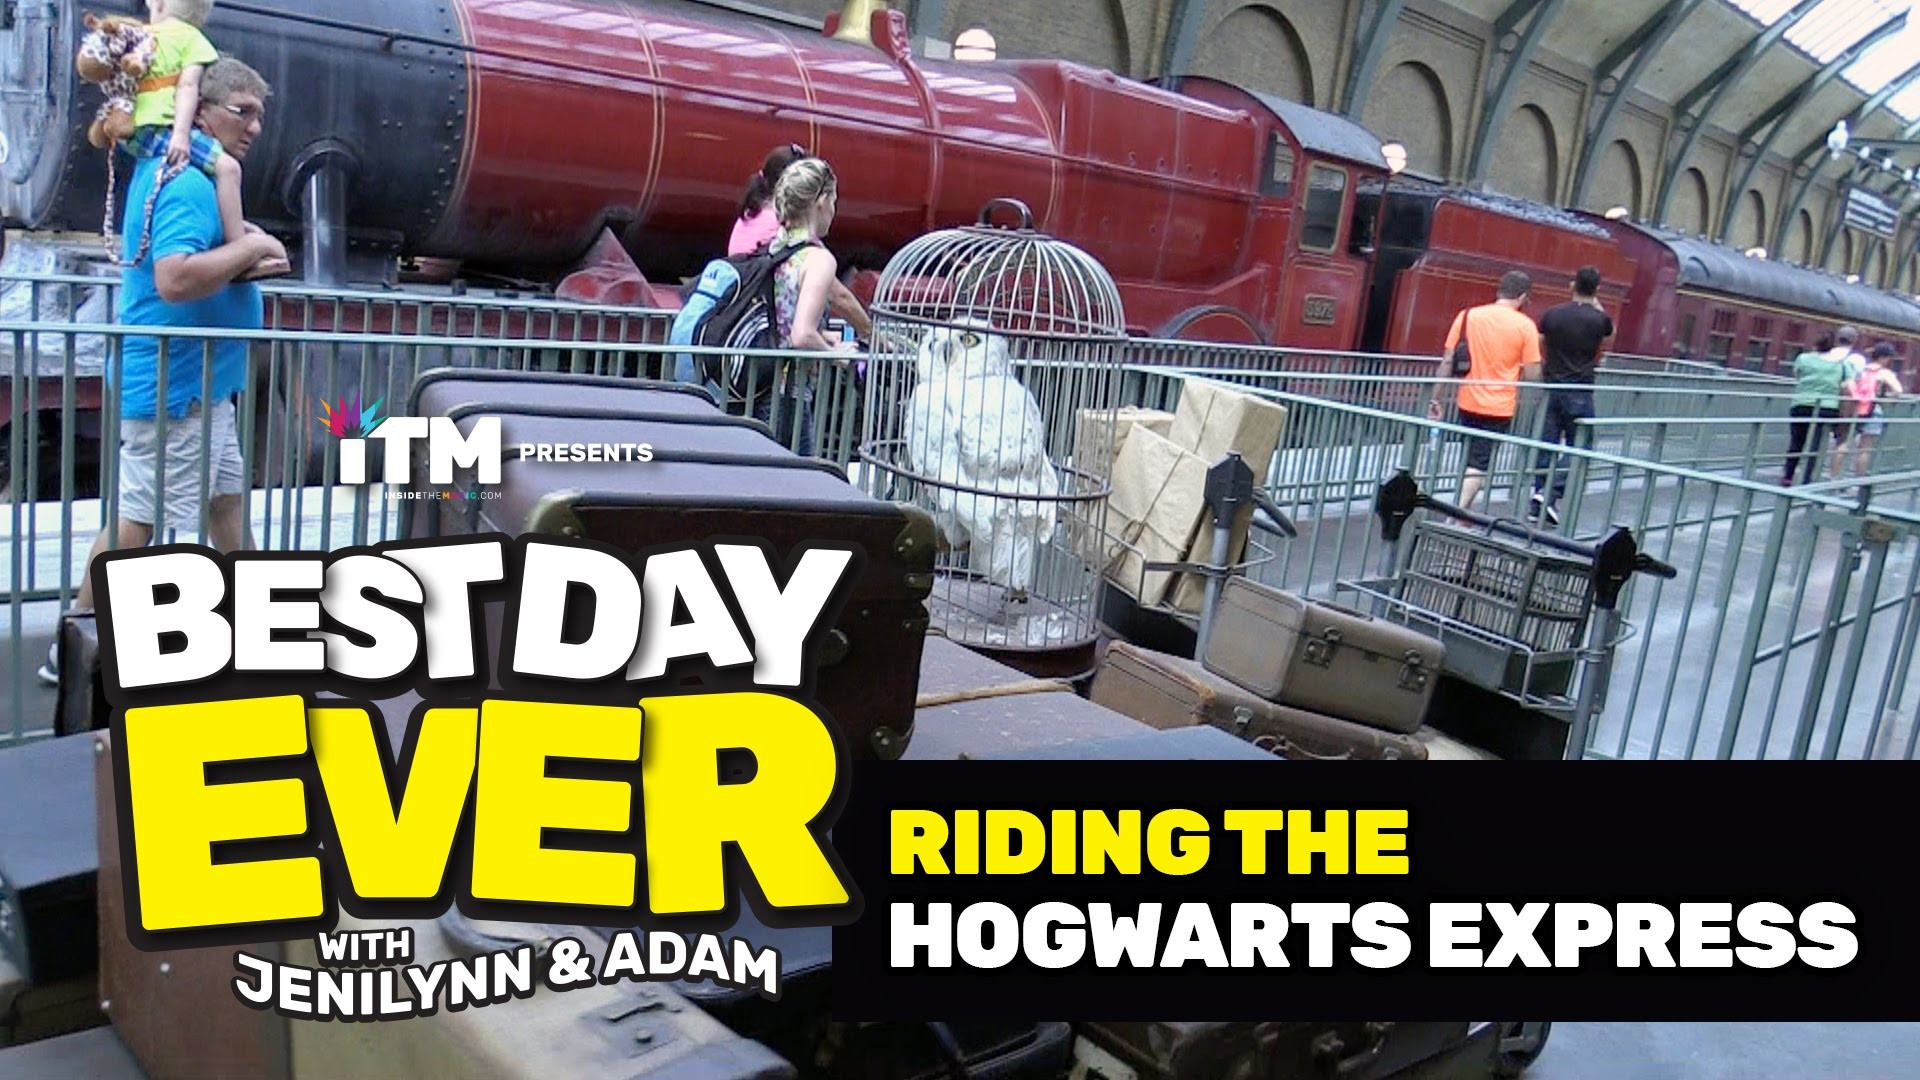 Res: 1920x1080, BEST DAY EVER: Riding the Hogwarts Express (Universal Orlando)